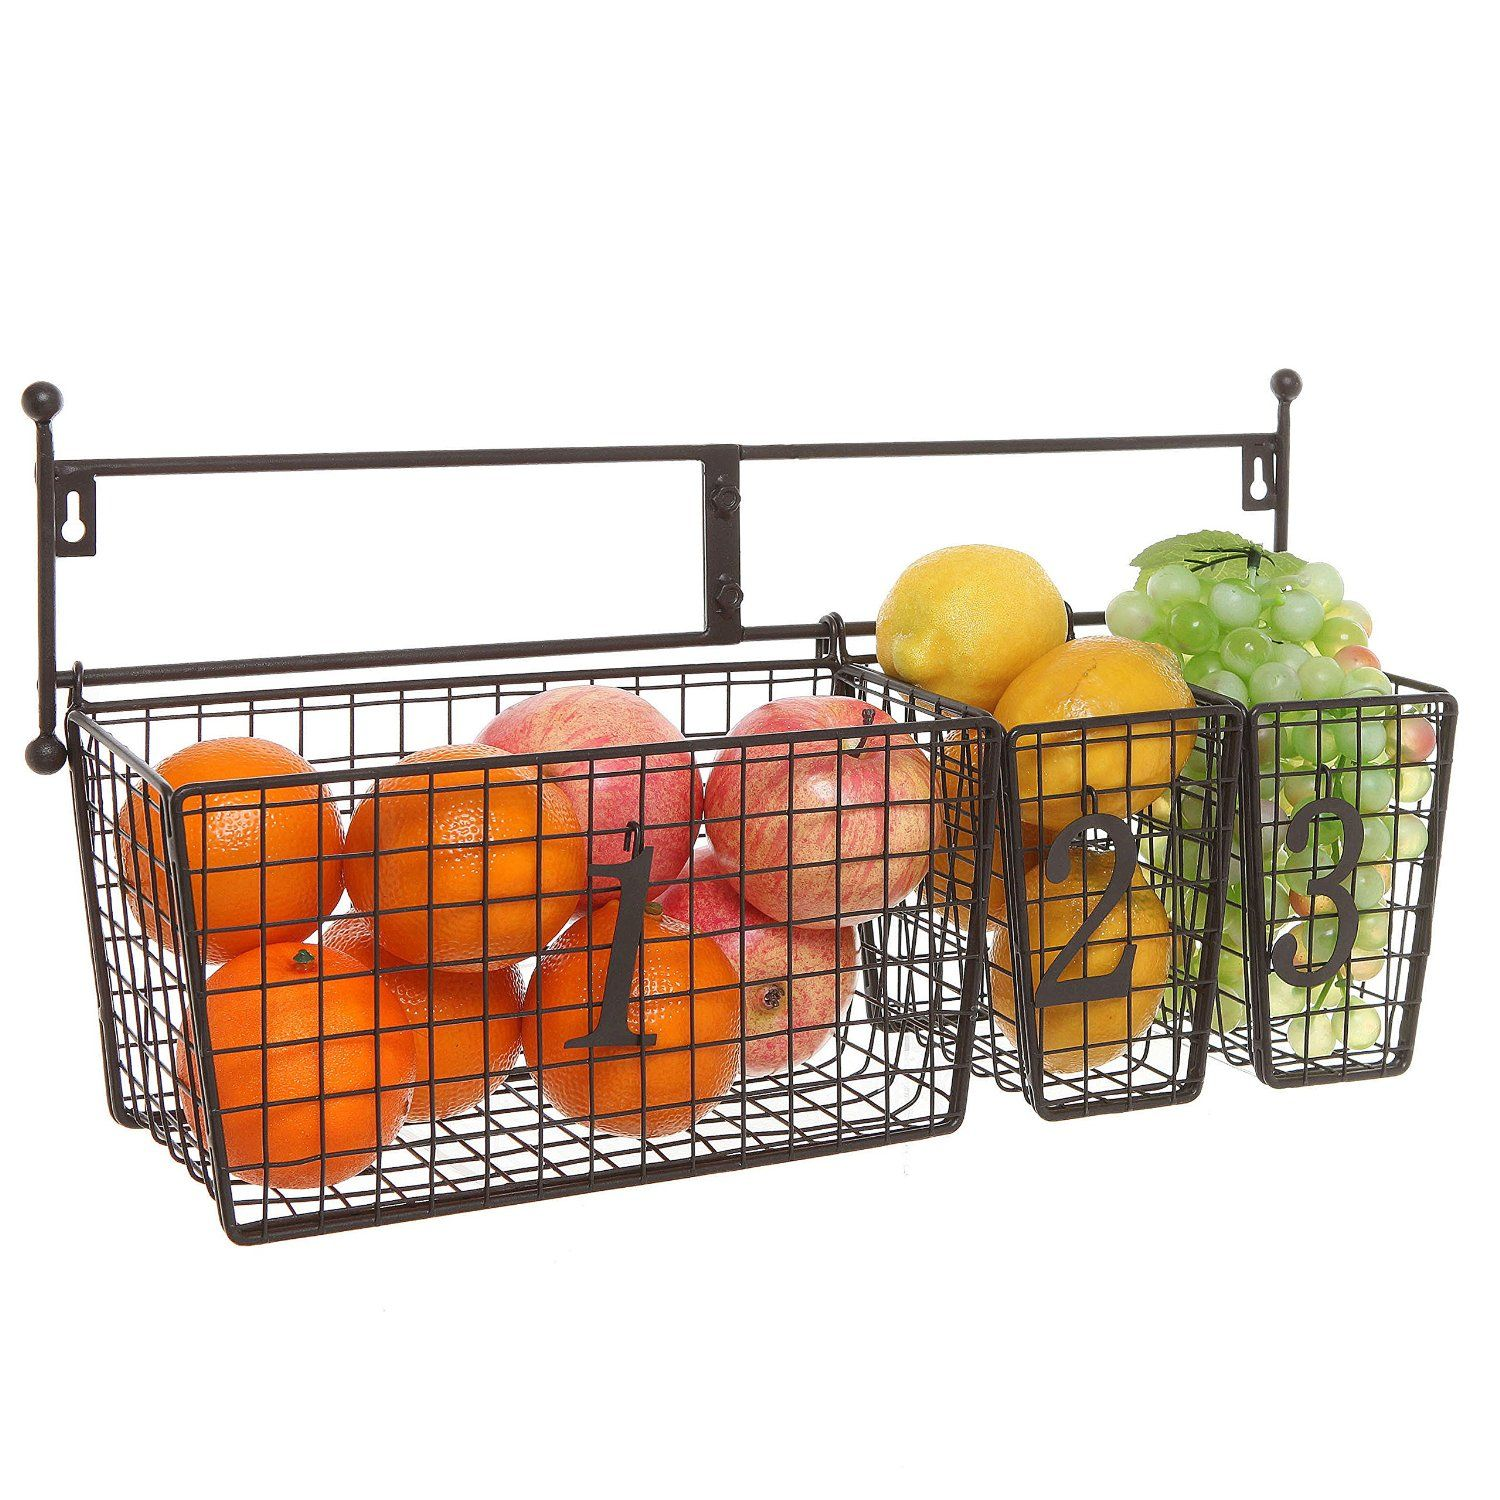 kitchen baskets storage wall mounted black metal wire mesh numbered 2294